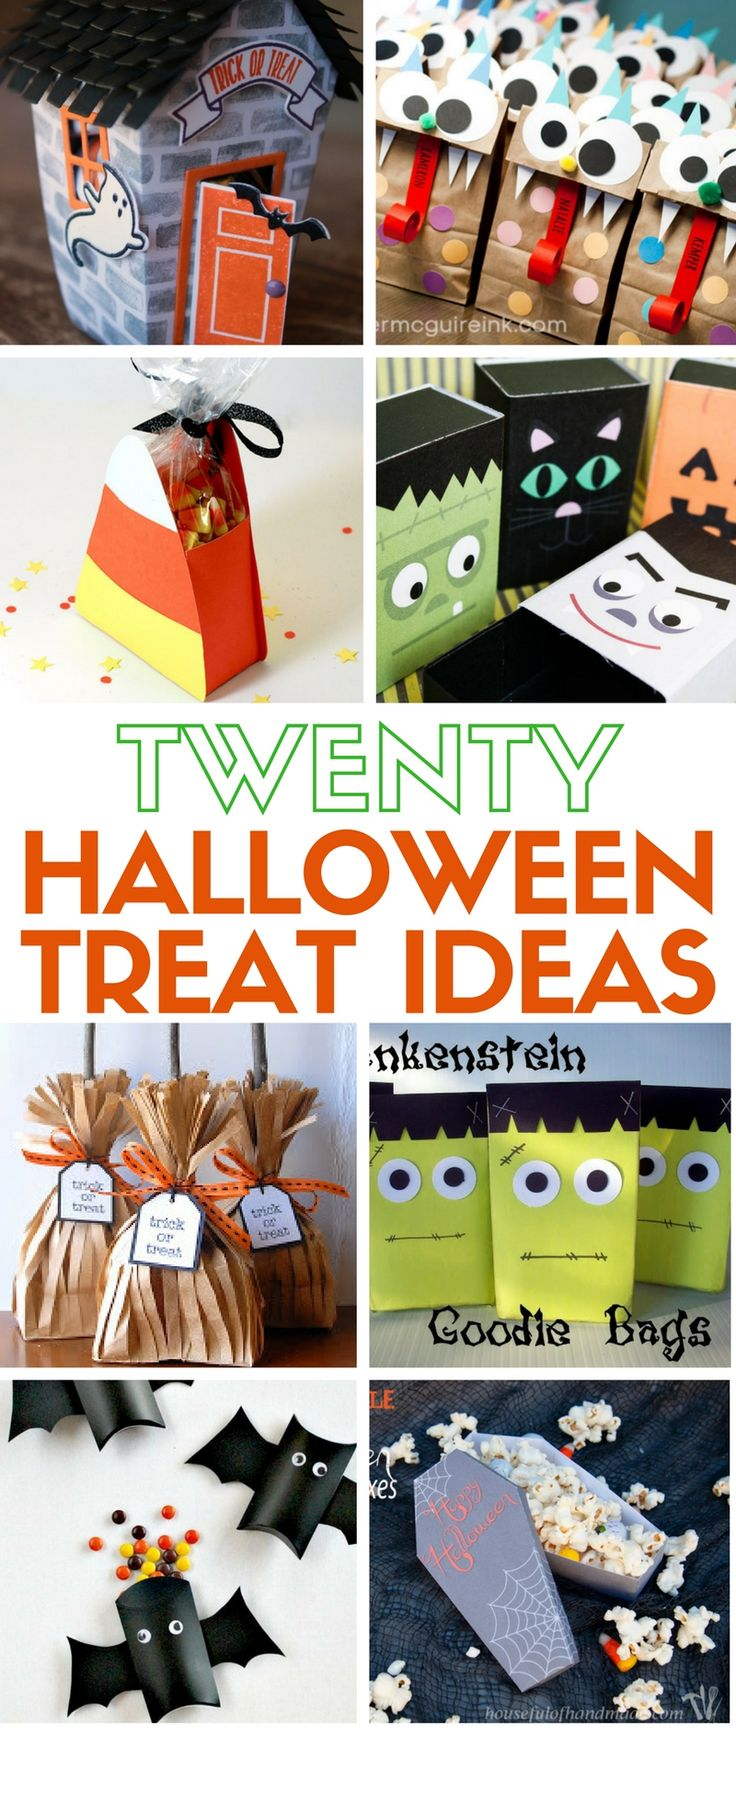 how to make 20 giftable halloween treats - Halloween Trick Ideas